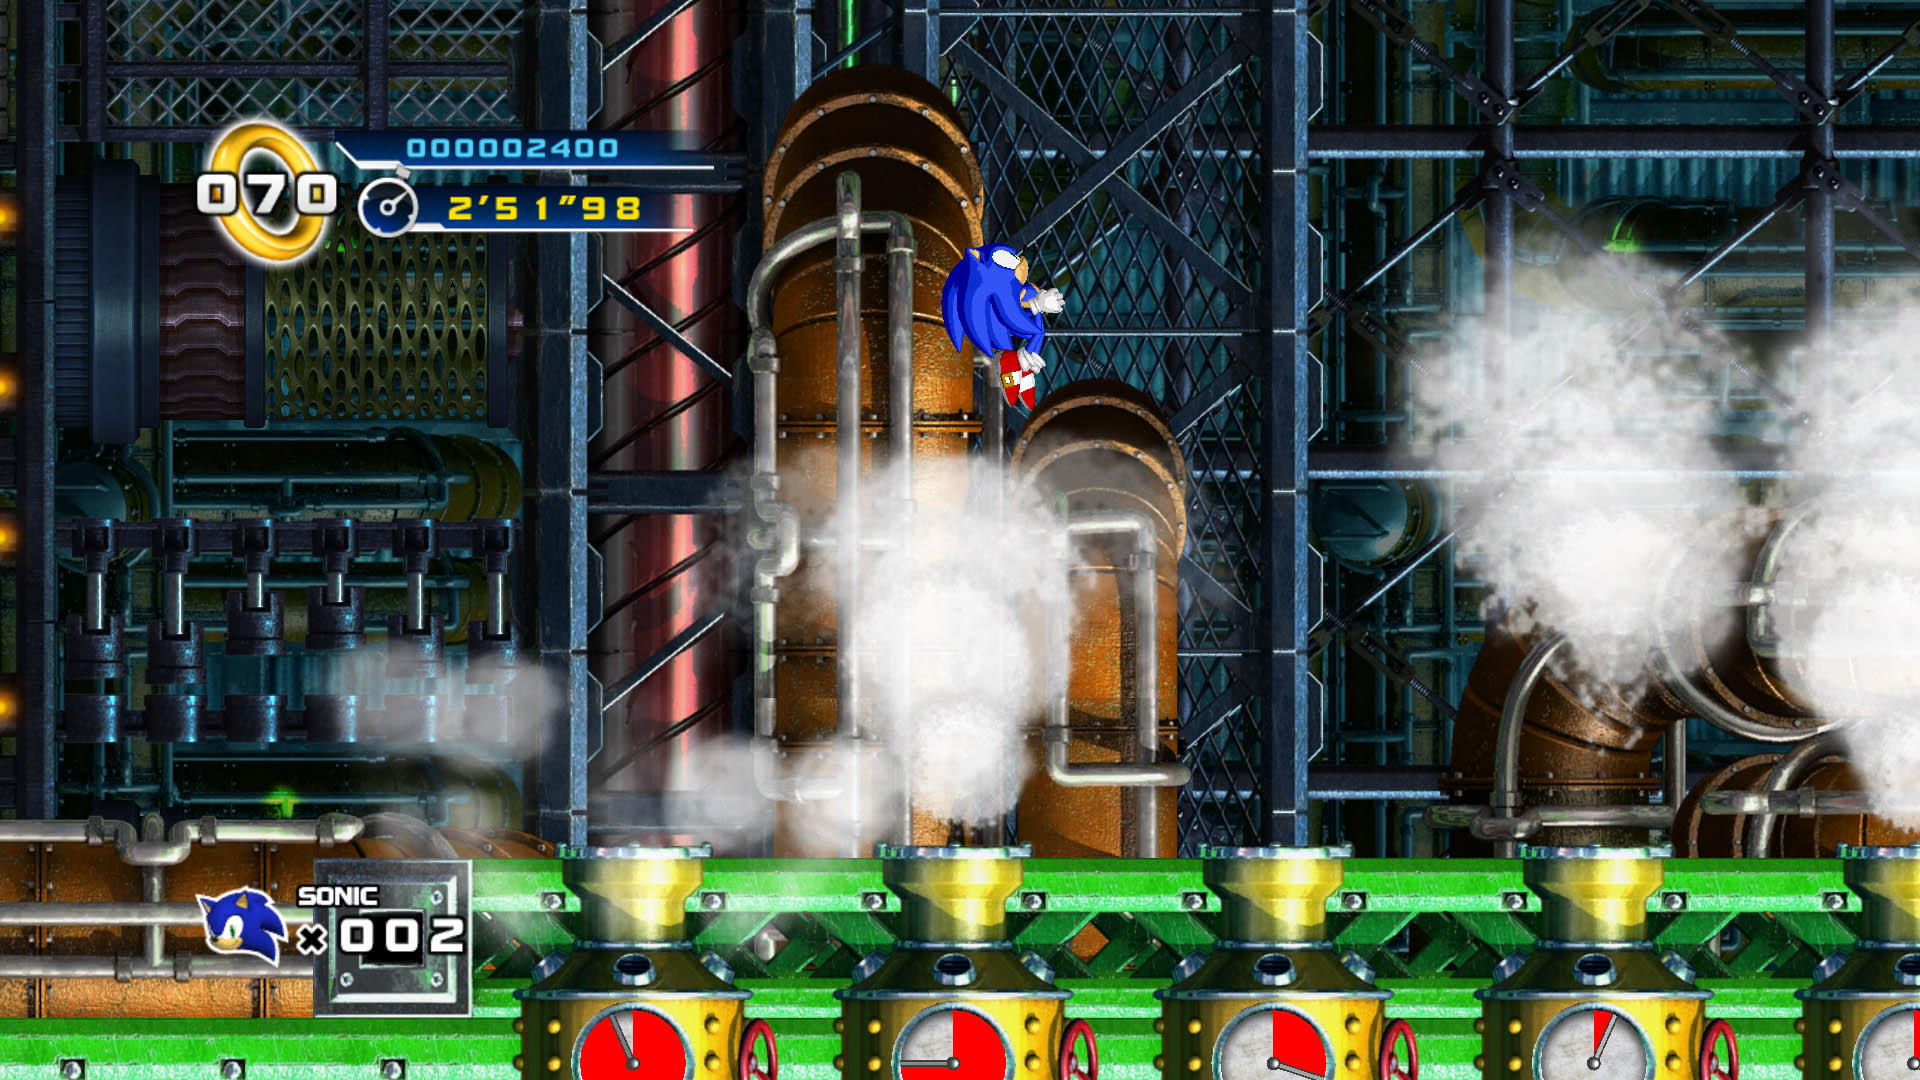 Sonic the Hedgehog 4 - Mad Gear Zone Xbox